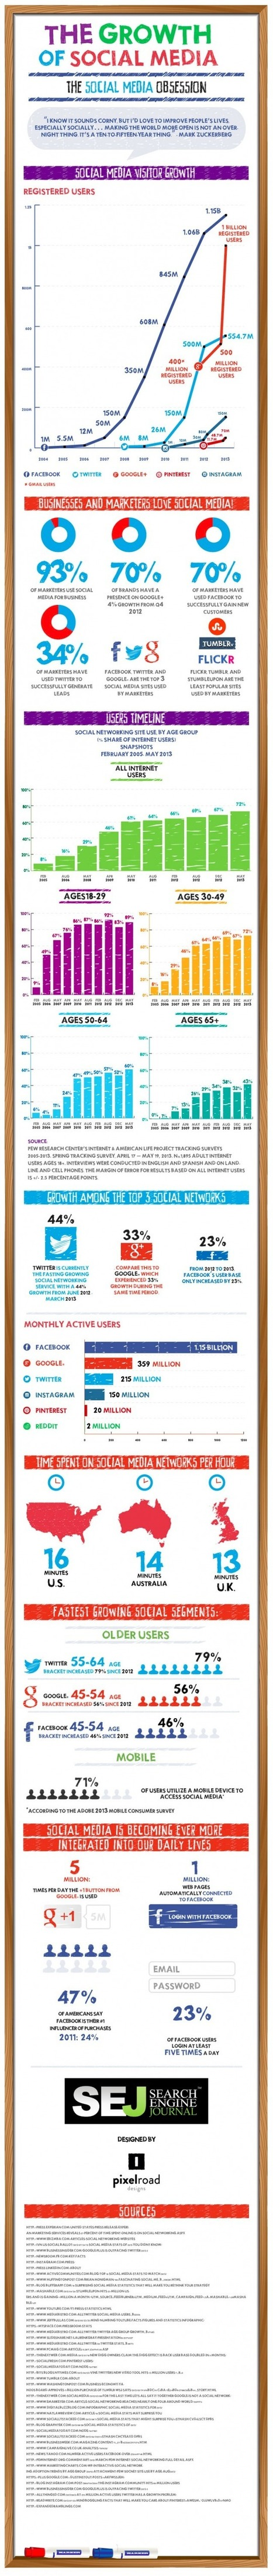 The Growth of Social Media v2.0 [INFOGRAPHIC] | Social Media Specialist JLS | Scoop.it